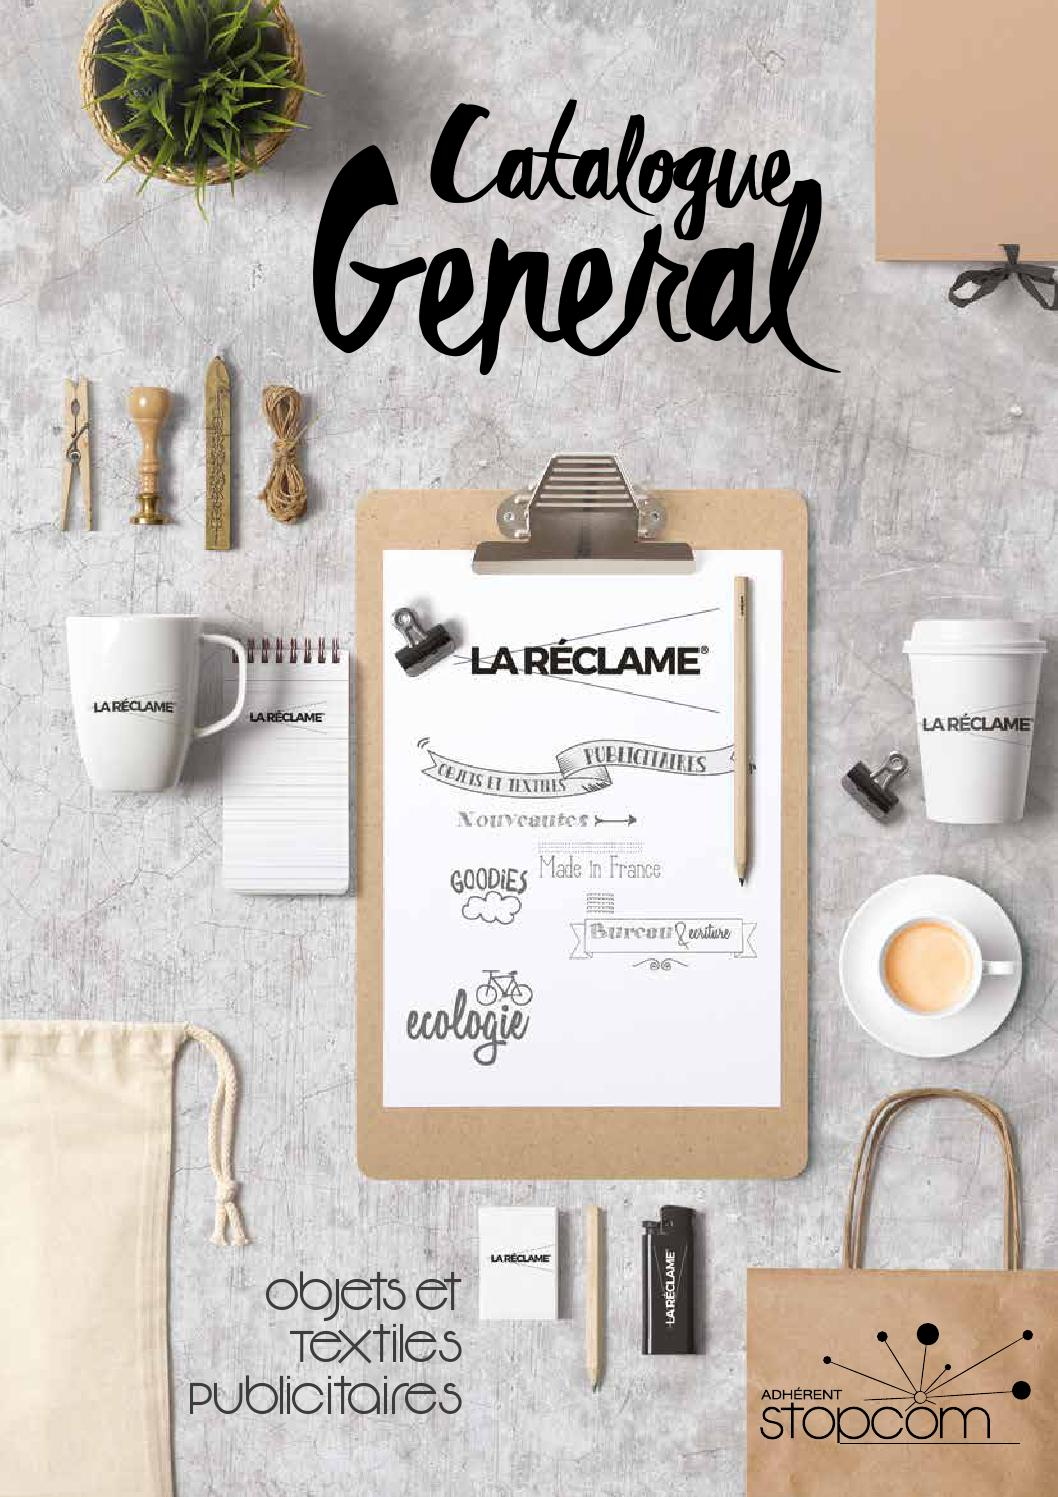 Catalogue og7 la reclame by Objectif Goodies - issuu 767f2c103a7